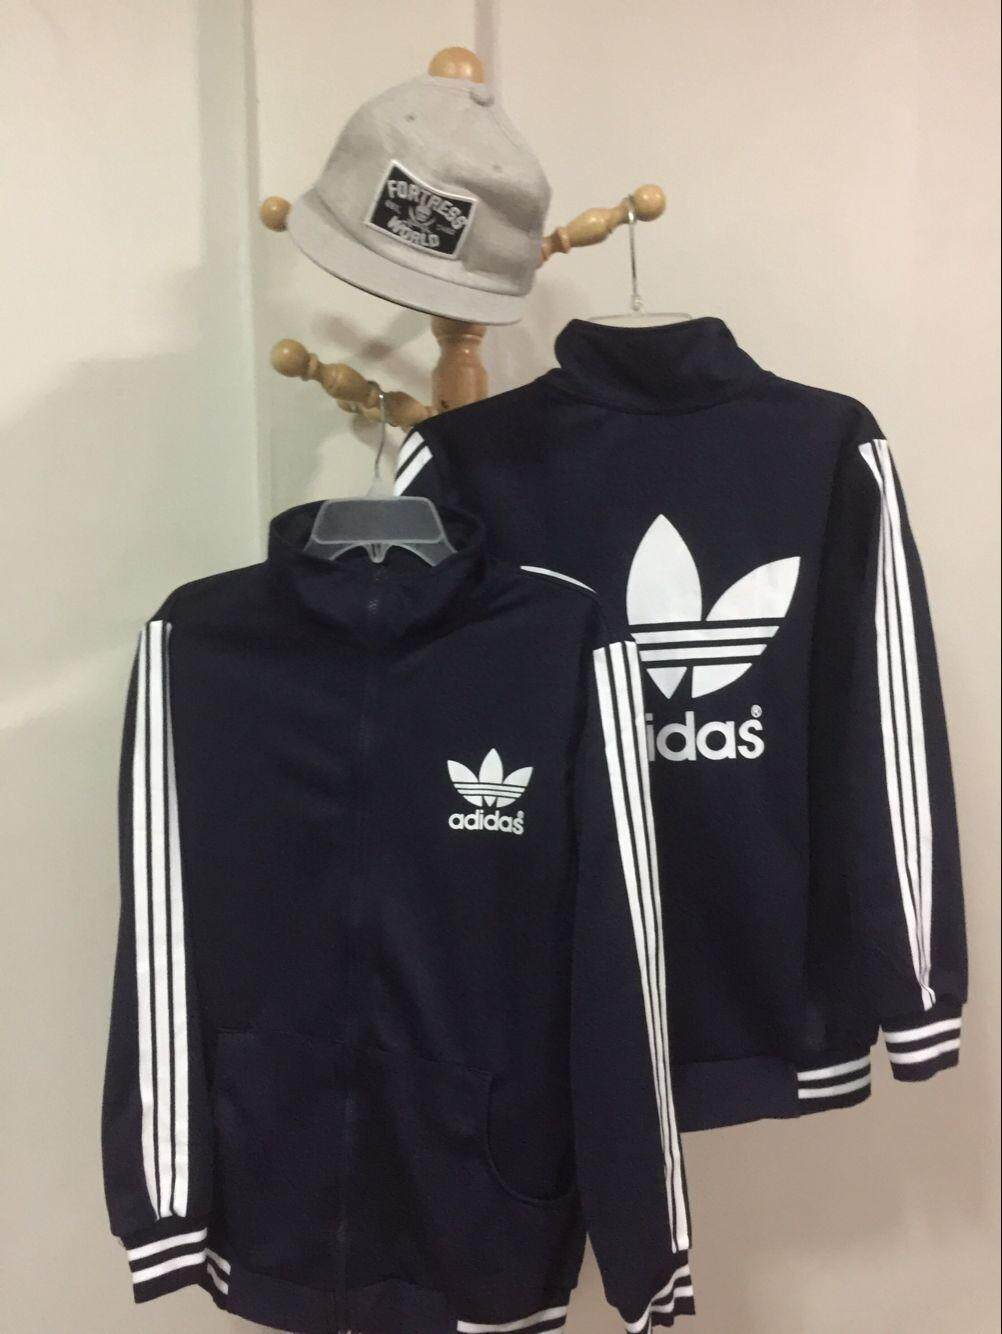 Adidas Fashion Unisex Comfortable Casual Coat